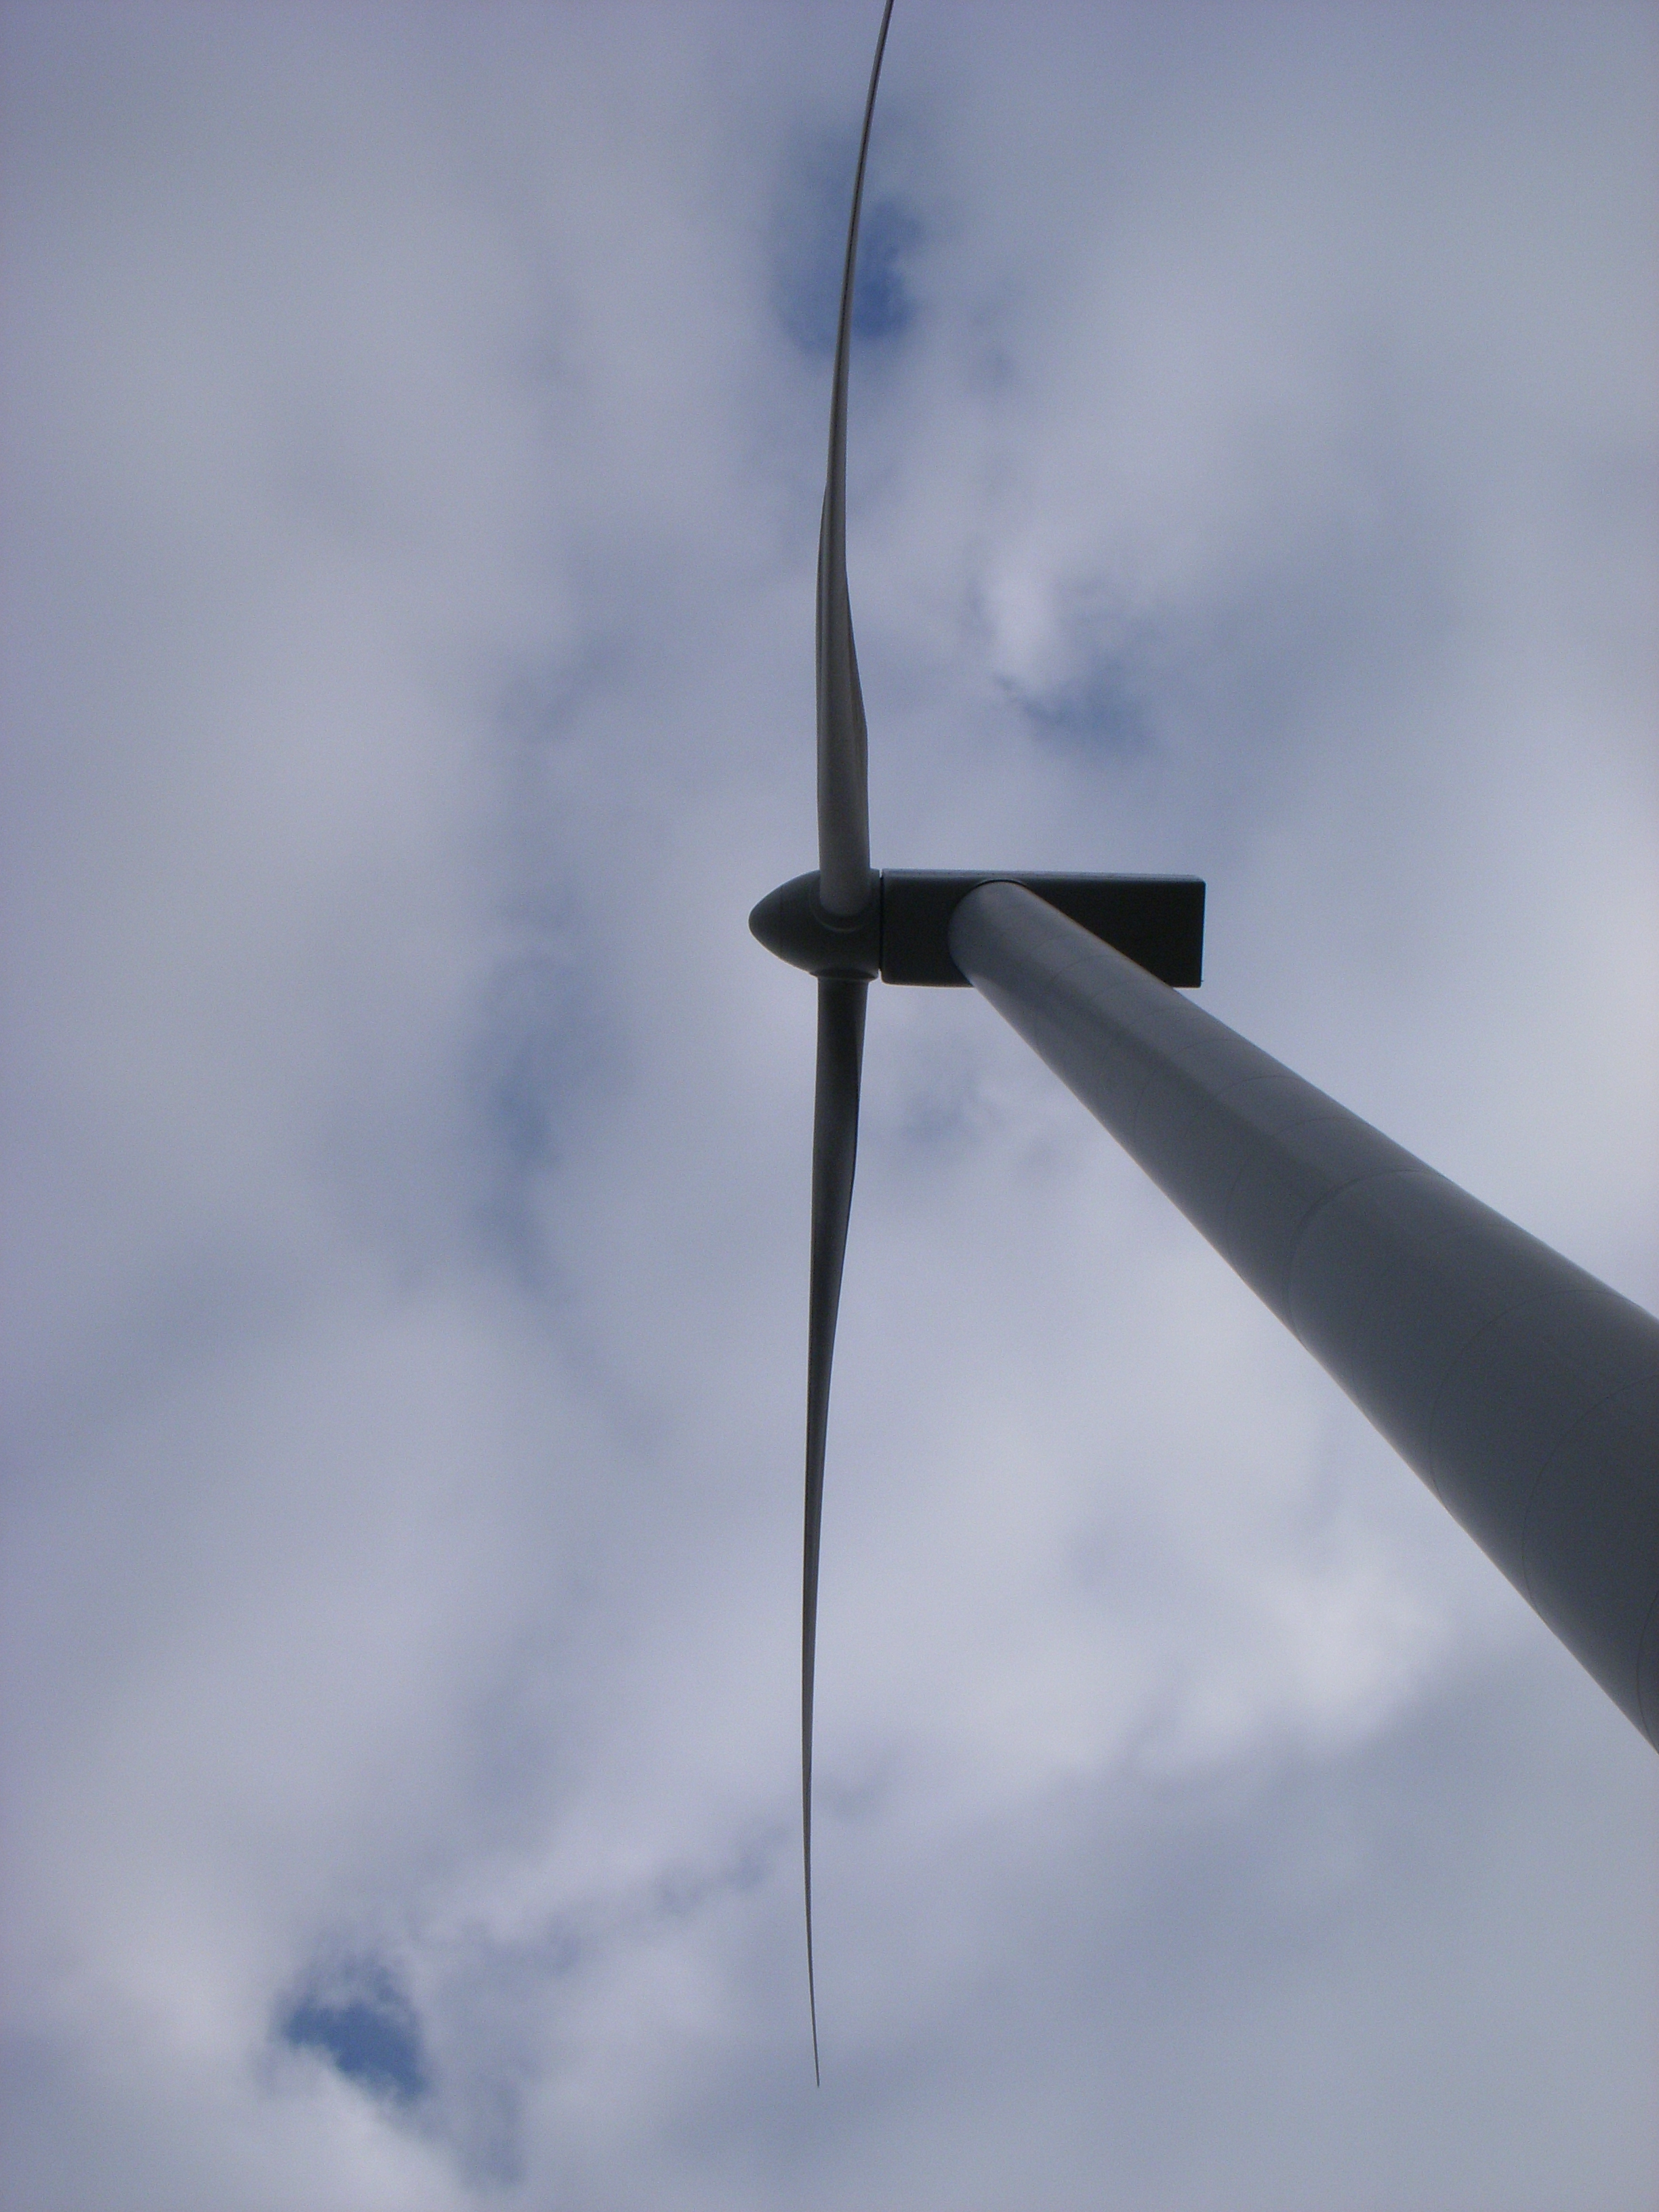 Wind turbine in West Cork, Ireland.